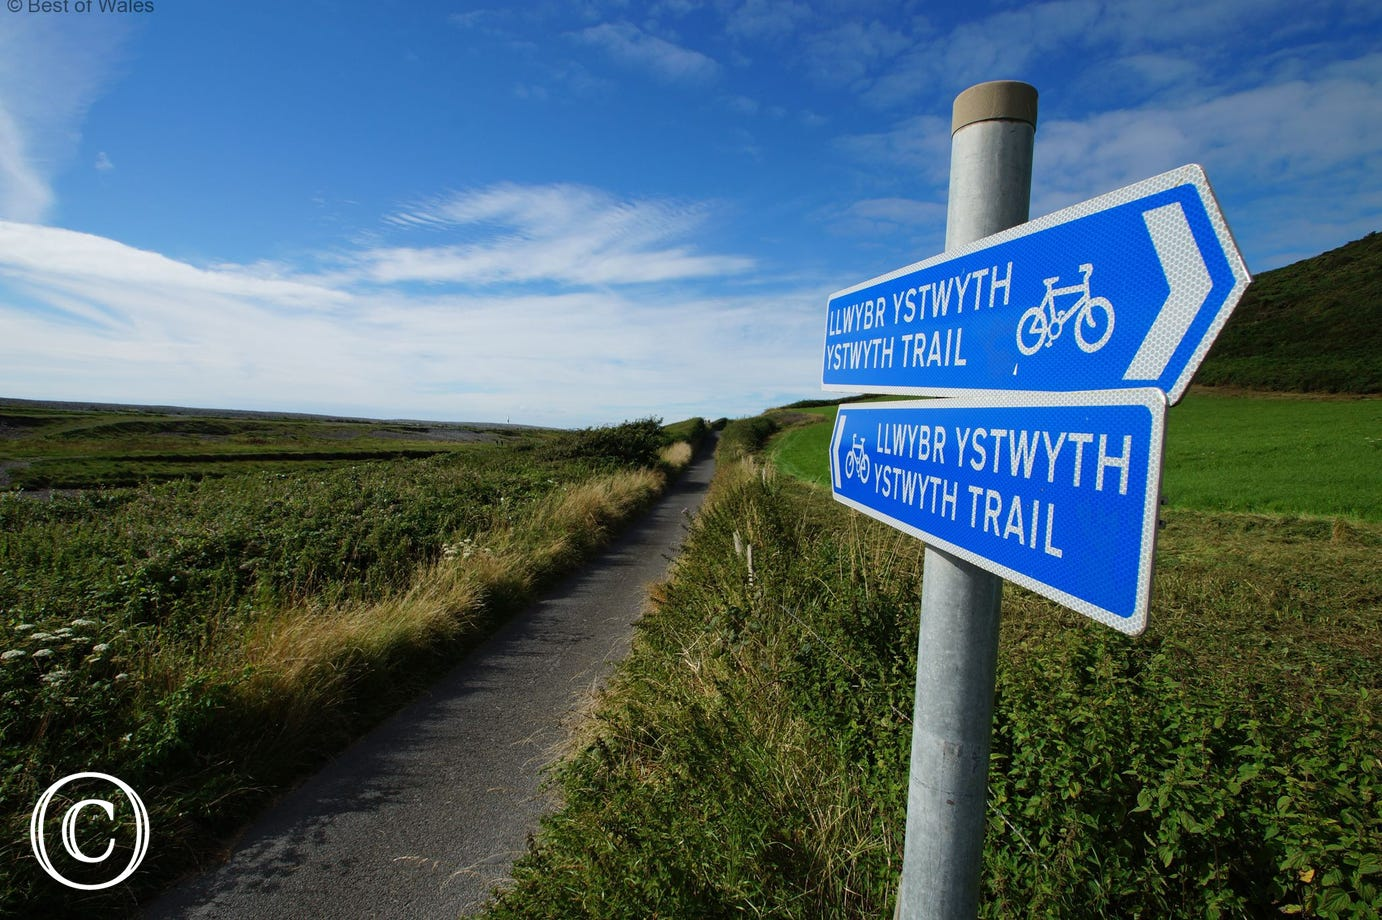 The Ystwyth Trail to Aberystwyth and Tregaron can be accessed 0.5 mile from your cottage